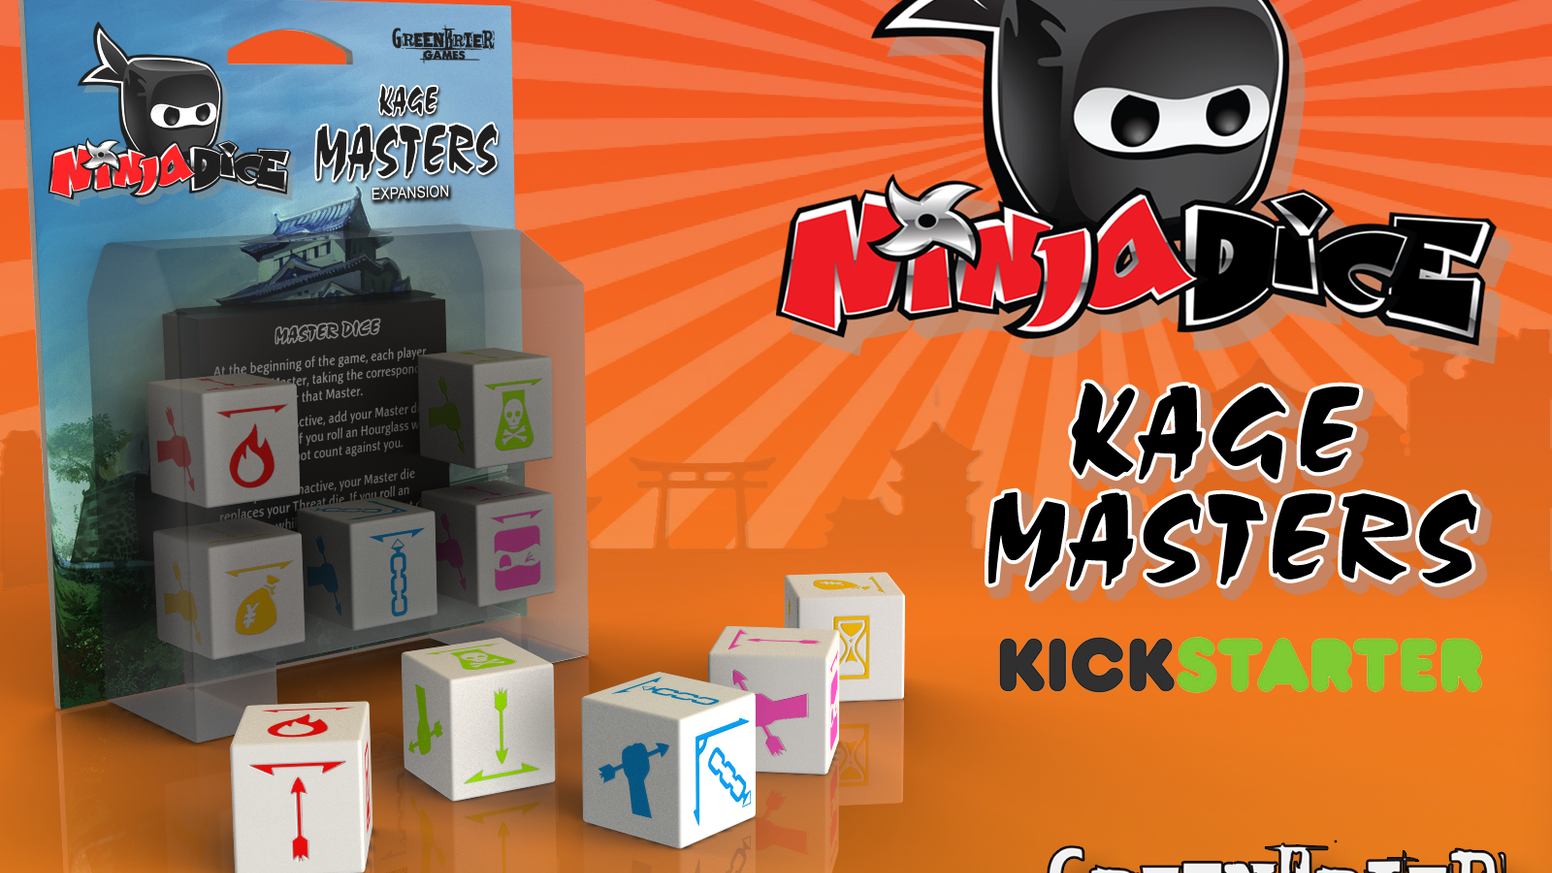 A new expansion that adds playable characters and special abilities to Ninja Dice; a push-your-luck dice game.